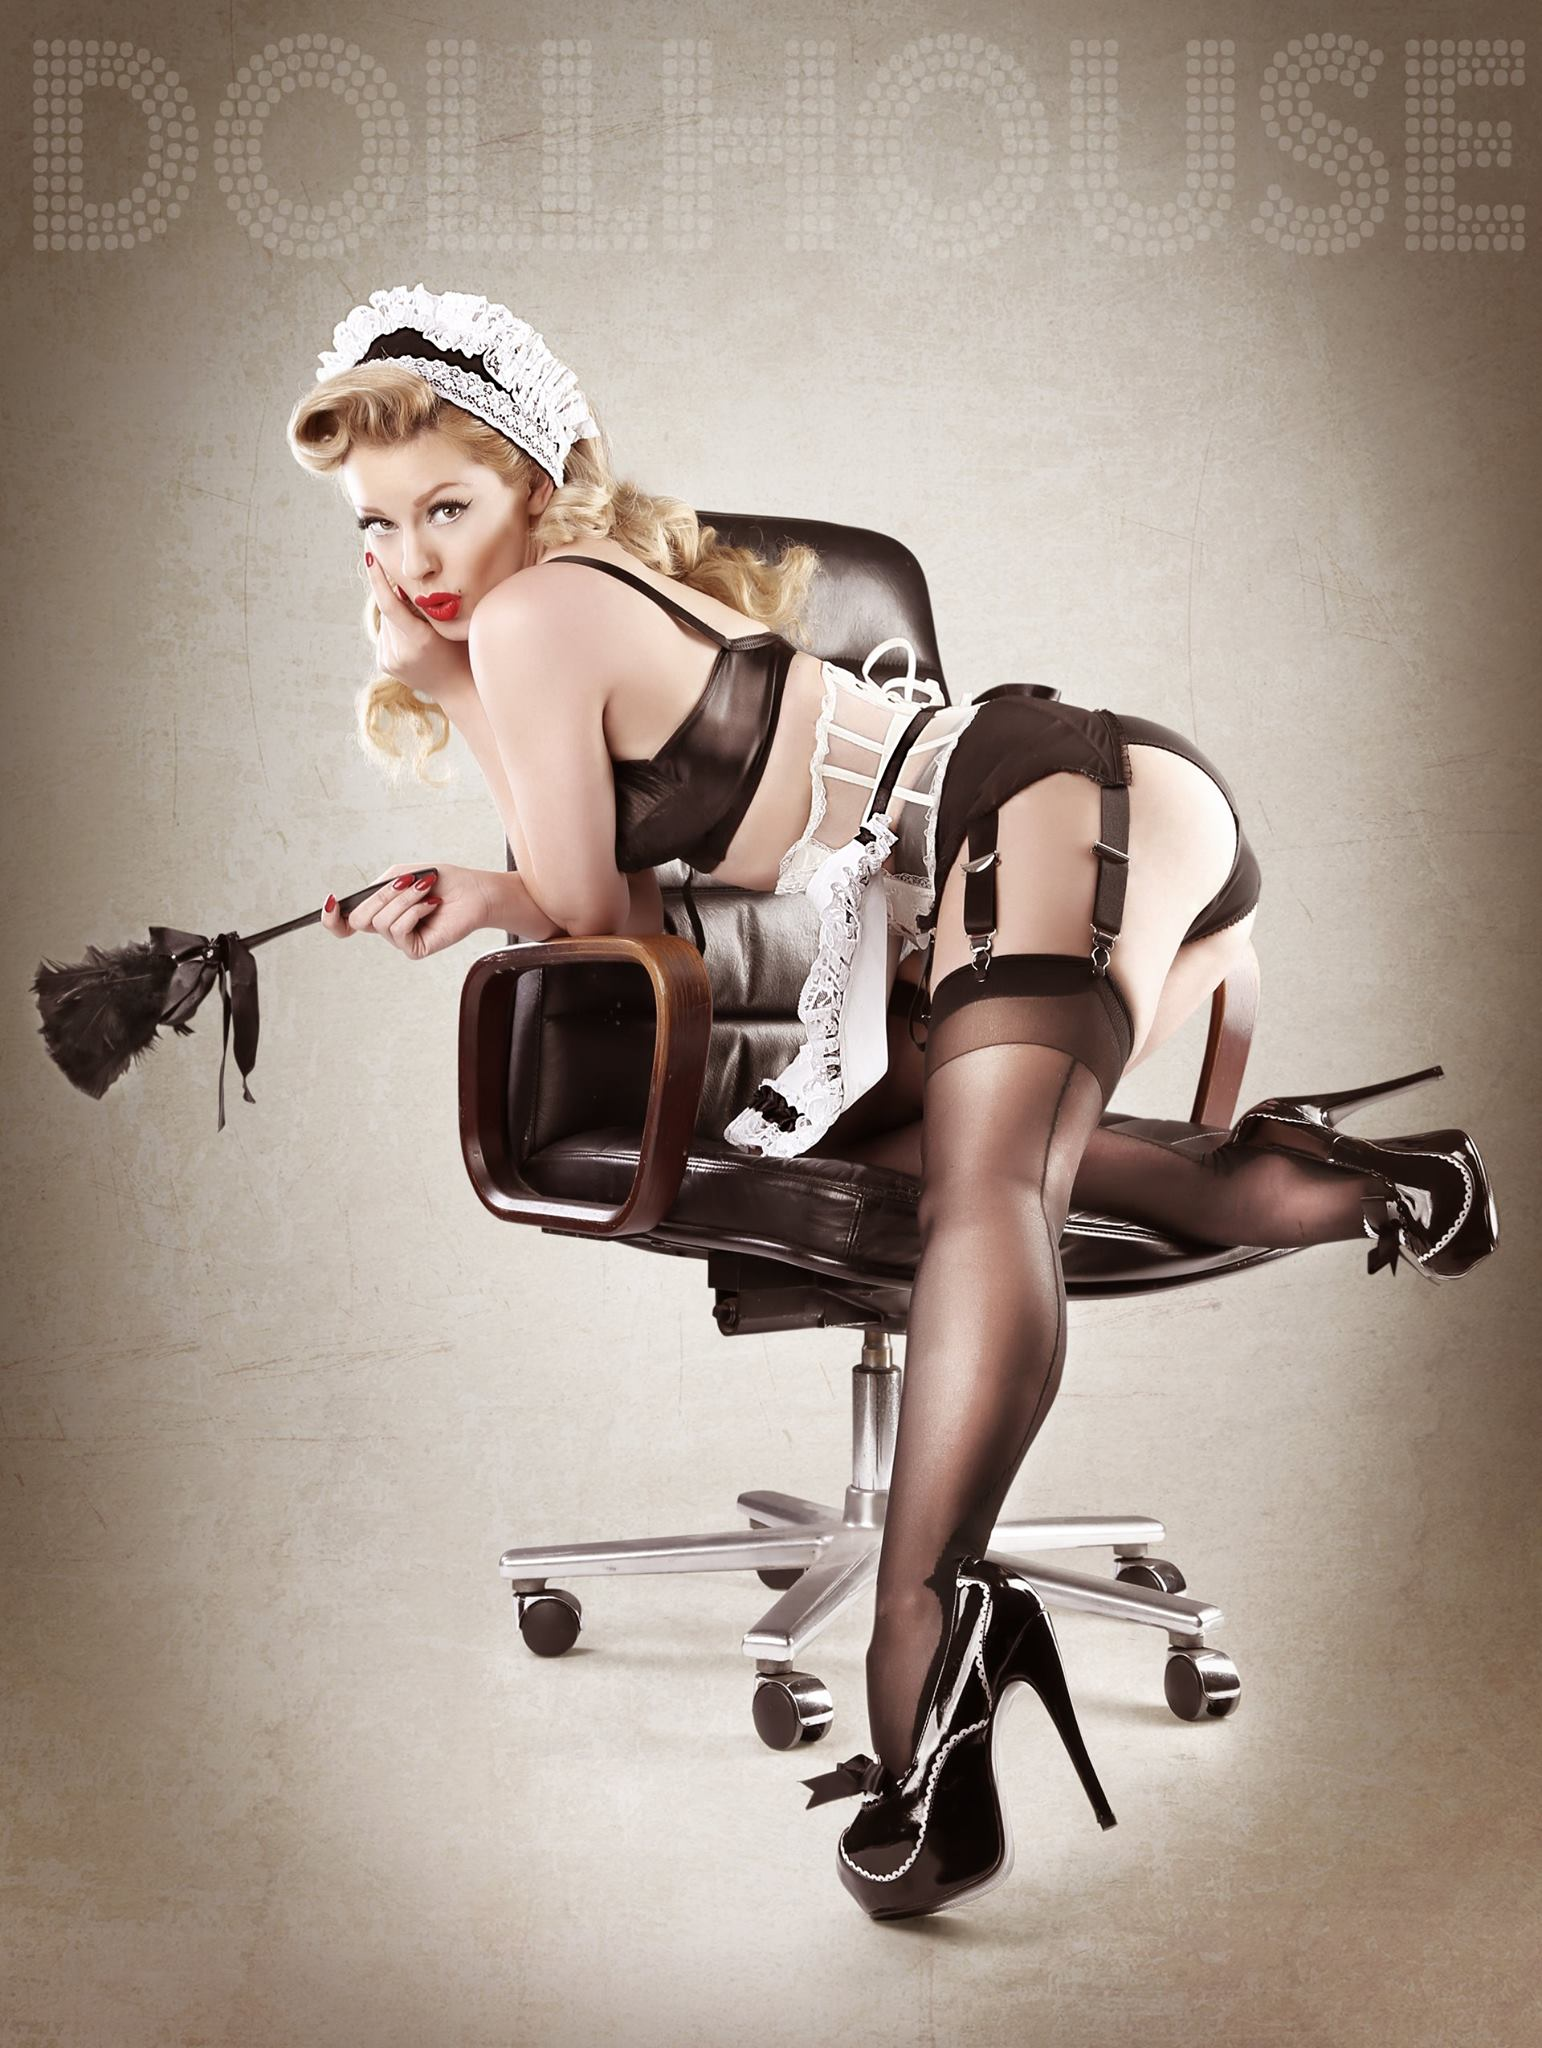 French Maid Pinup Model & Blog